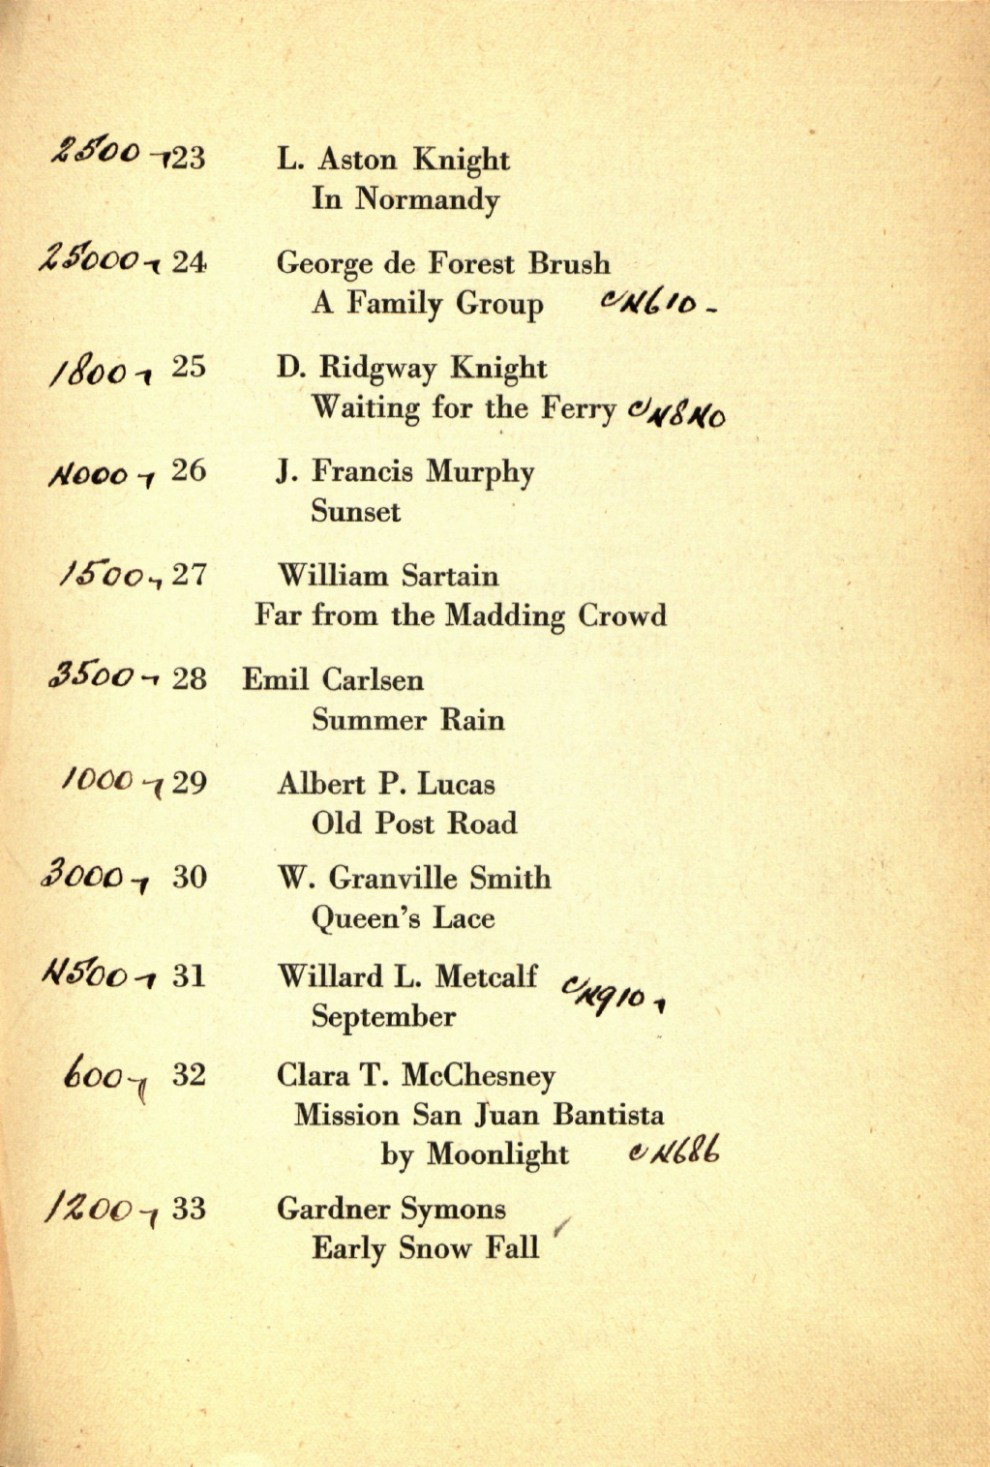 """1918 M. Knoedler & Co., New York, NY, """"Eleventh Annual Summer Exhibition of Paintings by American Aritsts"""", June - August"""